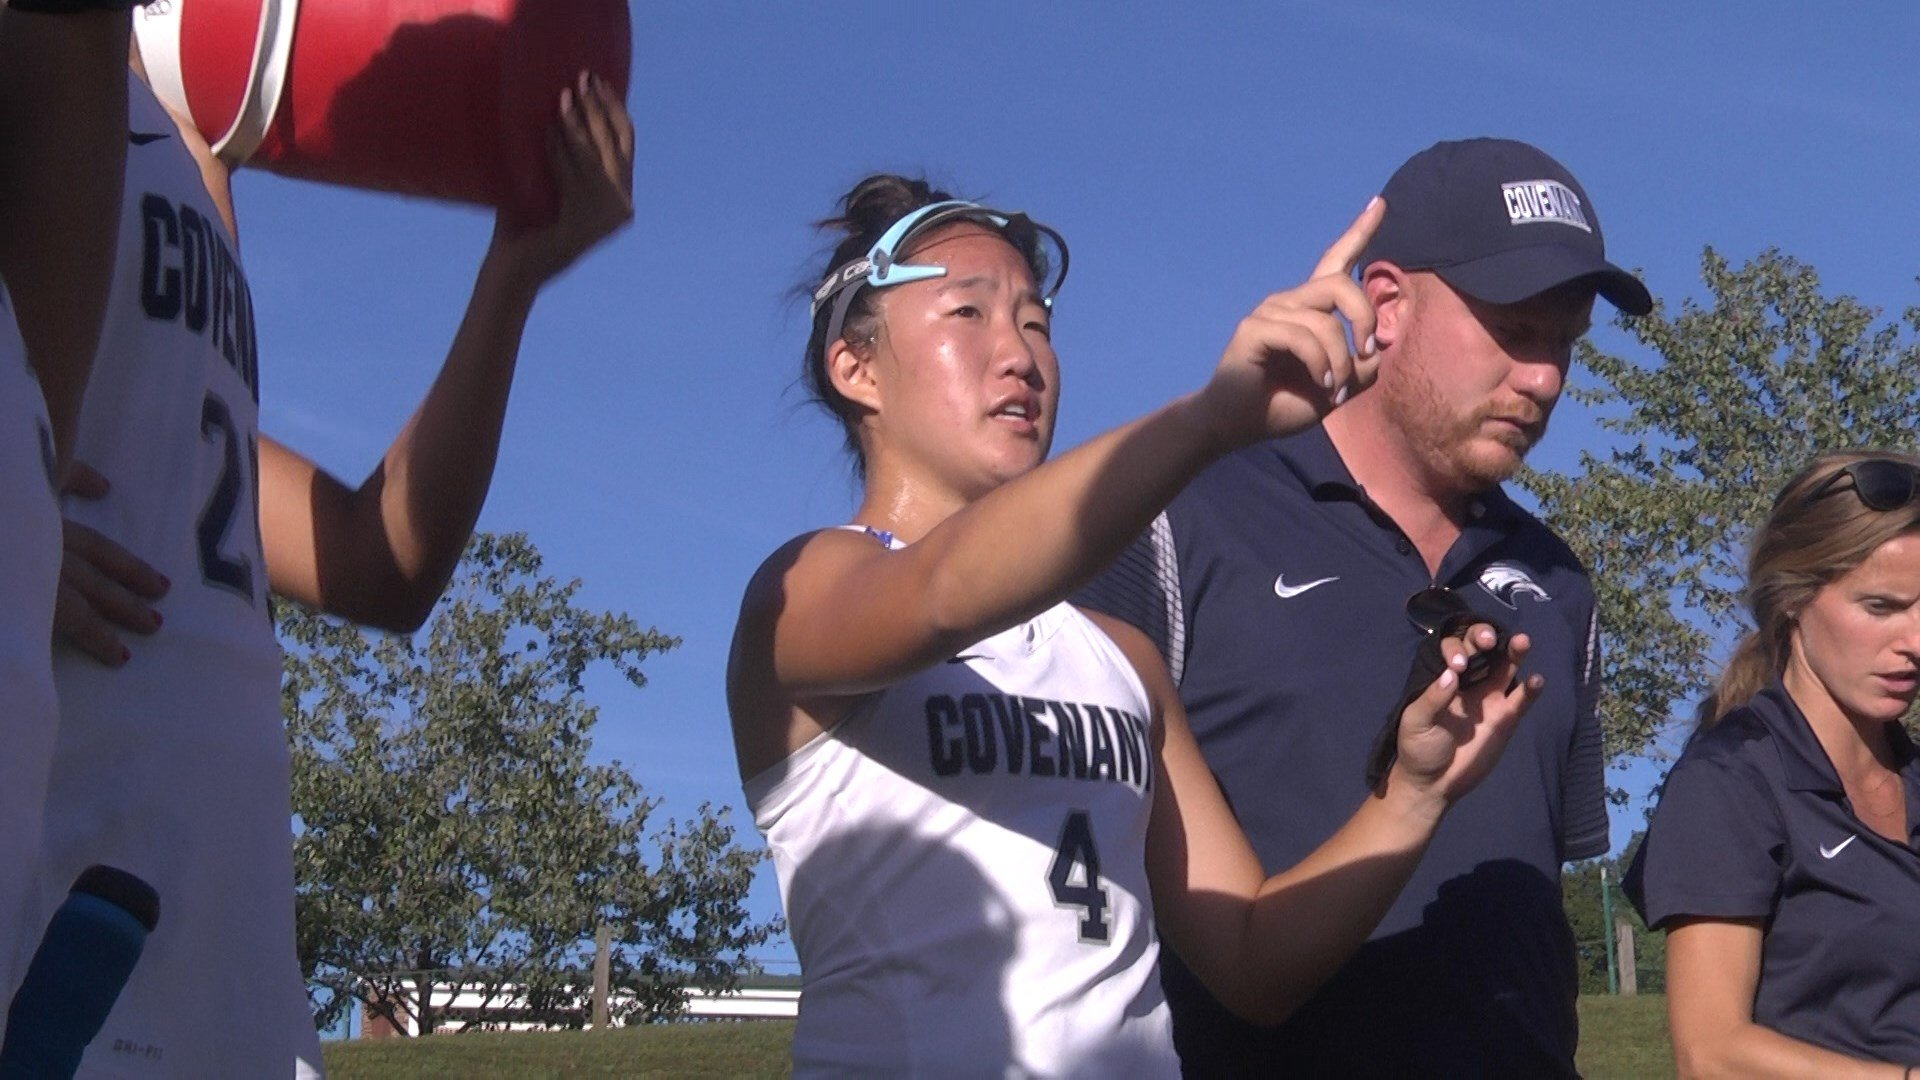 The Covenant senior will sign with the UVa field hockey team in the spring